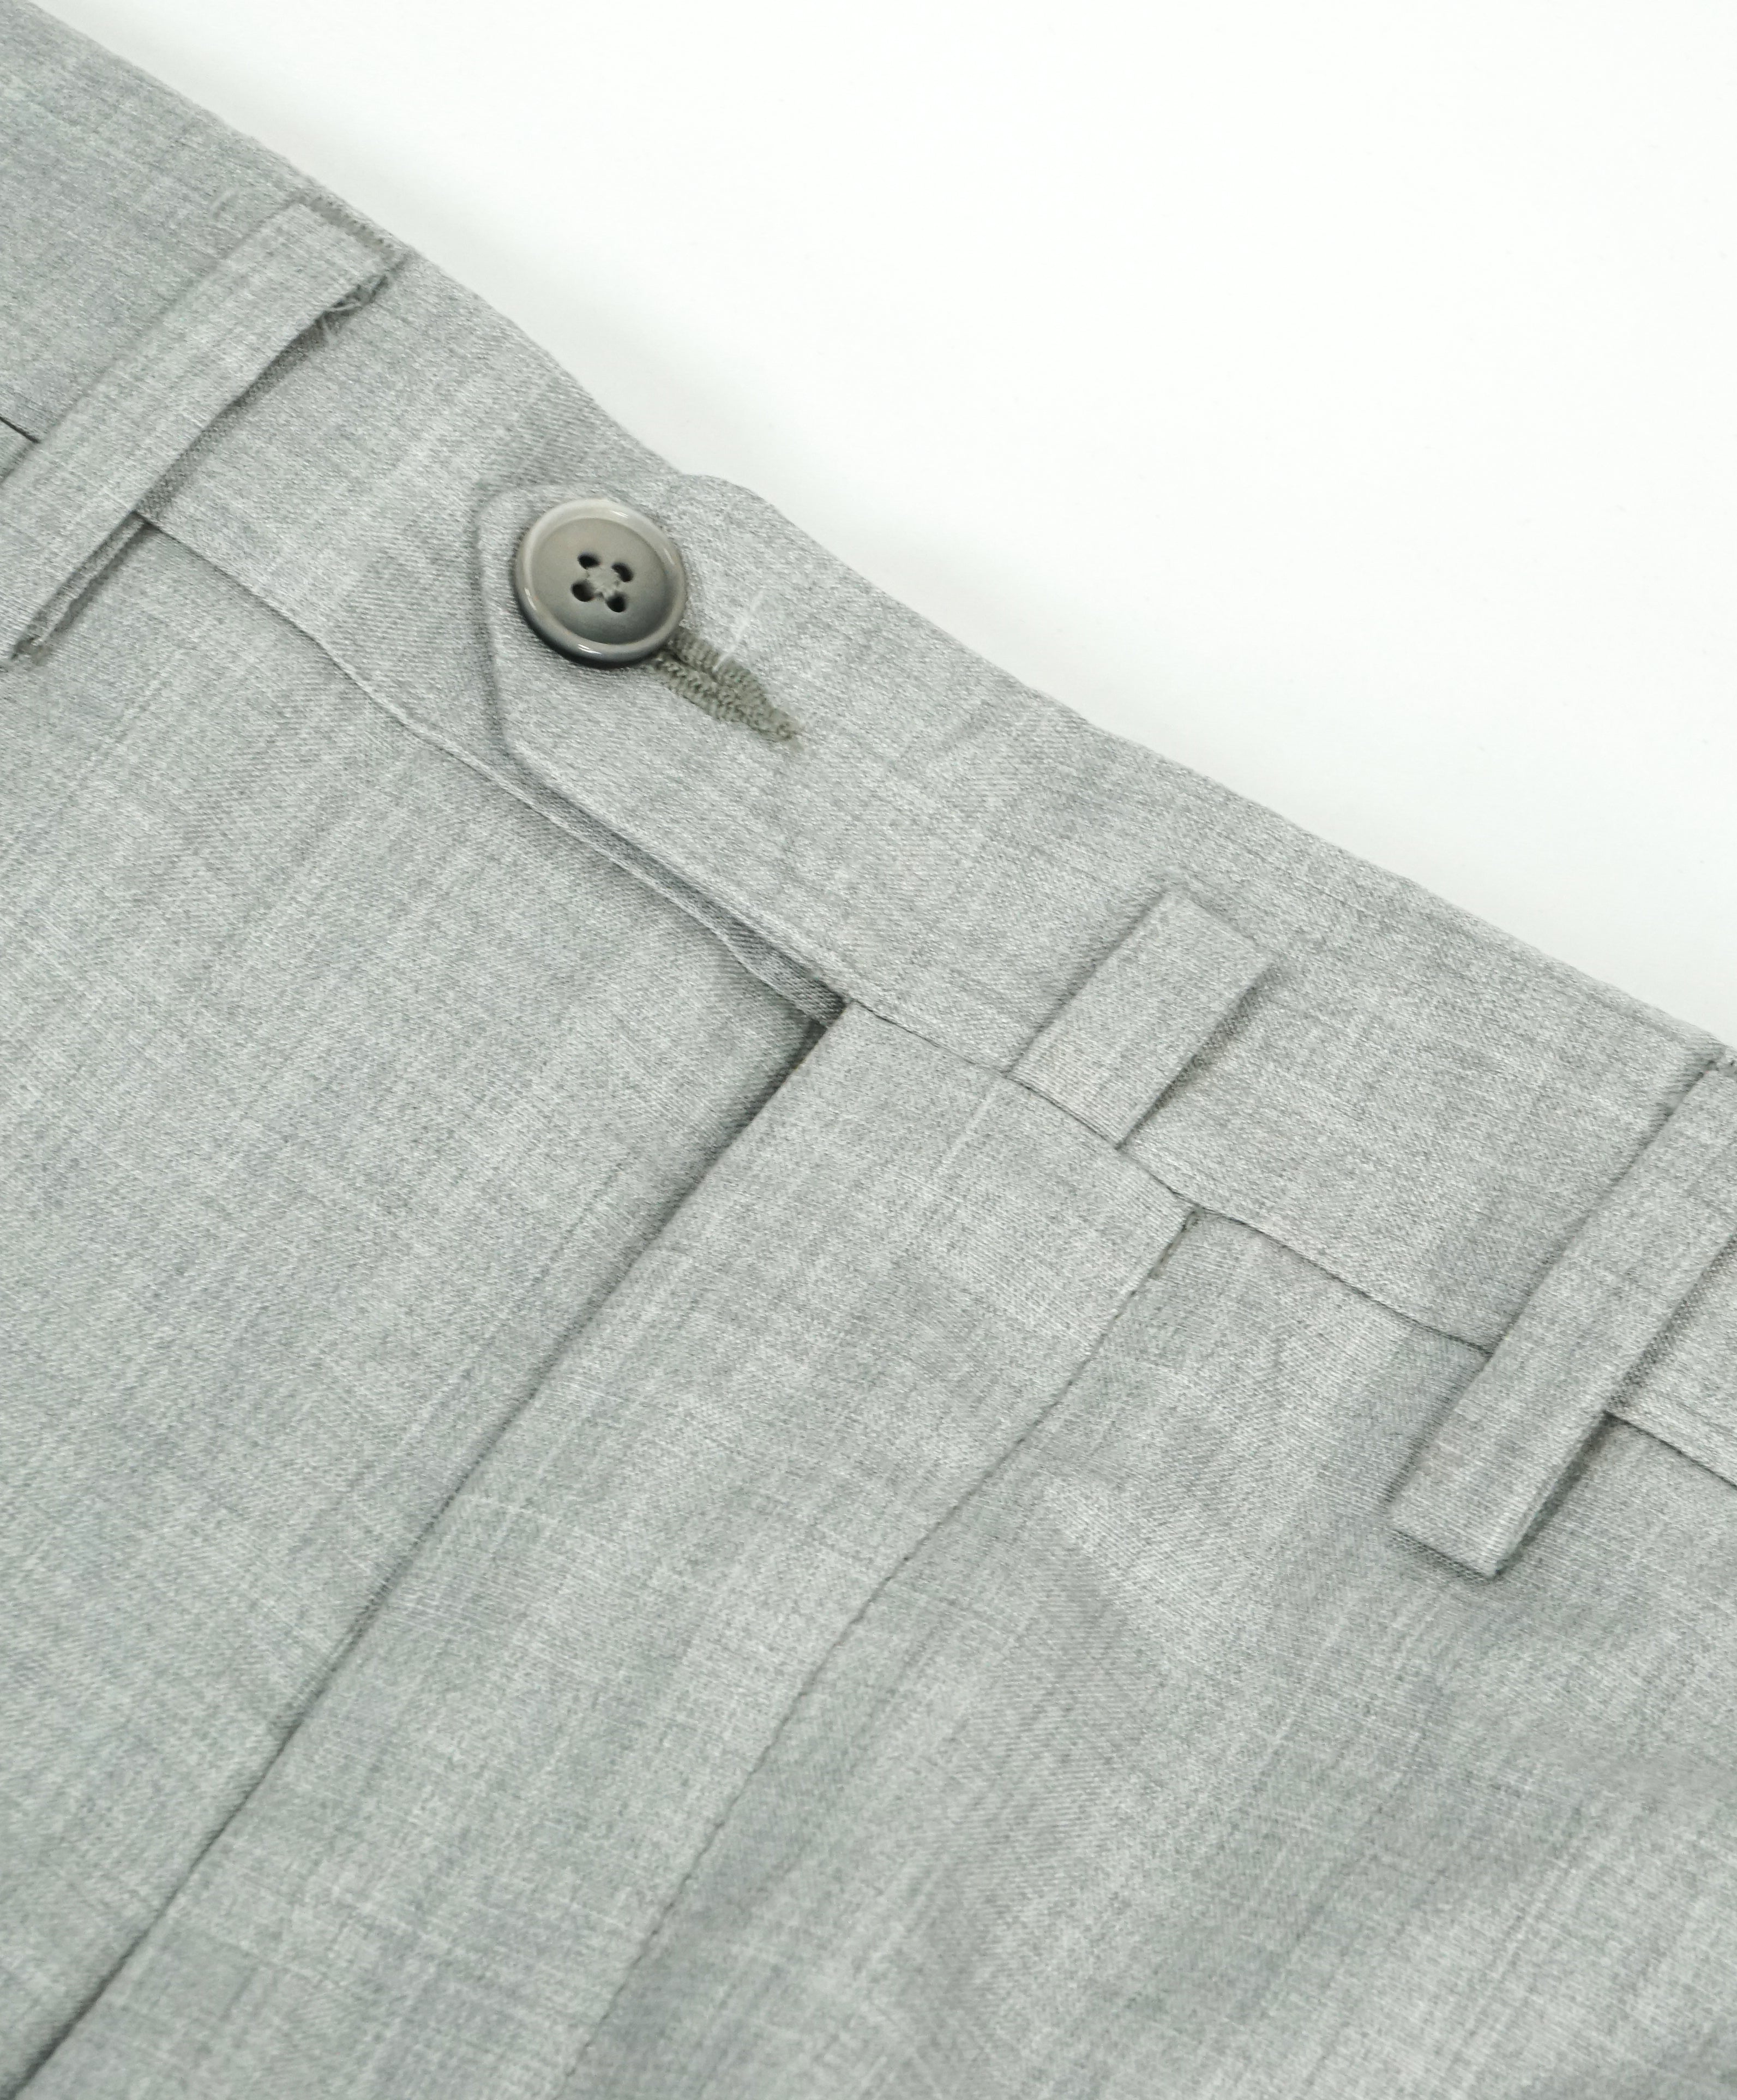 SAKS FIFTH AVE - Light Gray 100% SILK Made In Italy Flat Front Dress Pants - 32W